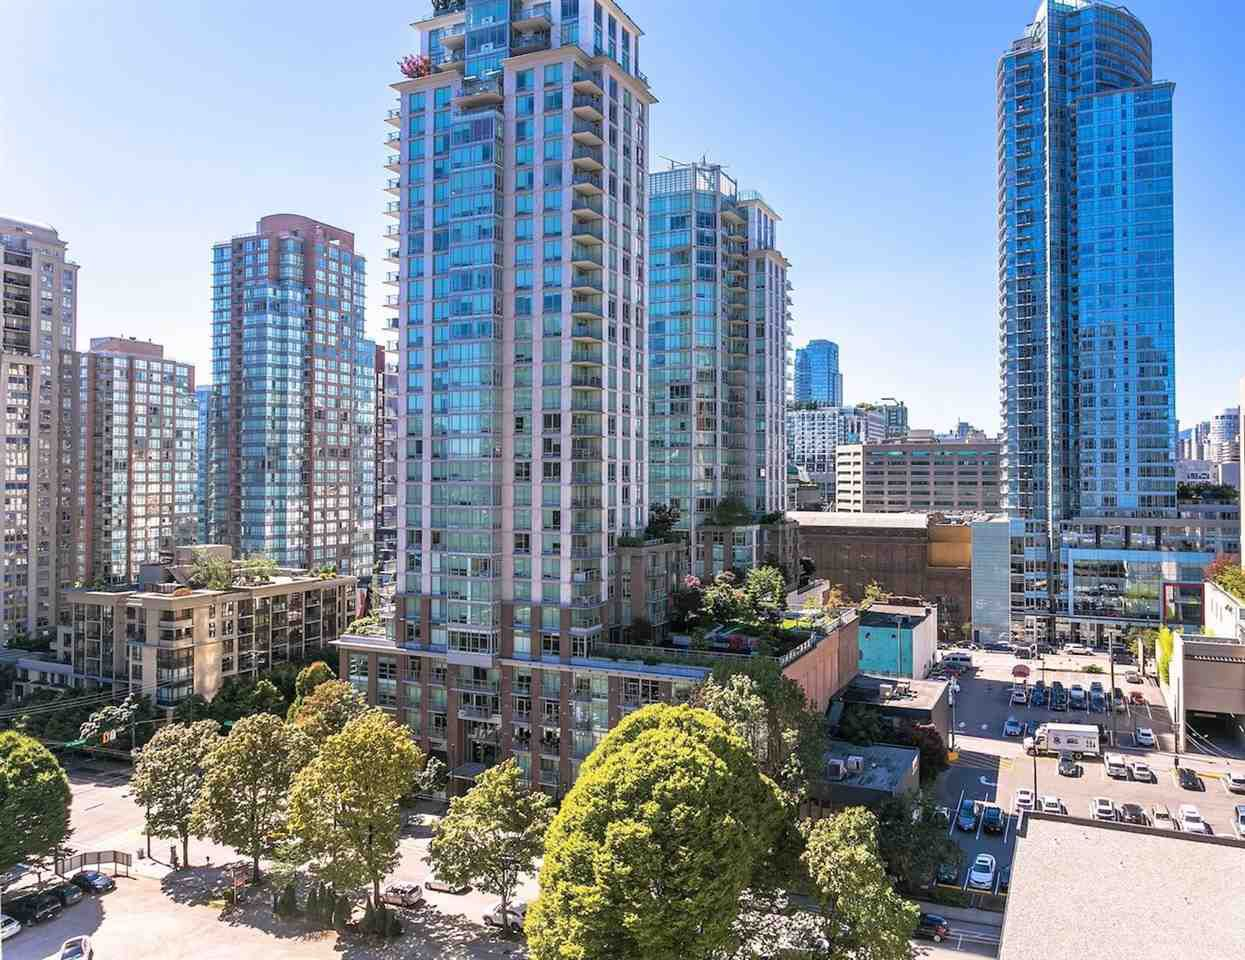 """Main Photo: 1208 833 HOMER Street in Vancouver: Downtown VW Condo for sale in """"Atelier"""" (Vancouver West)  : MLS®# R2305528"""